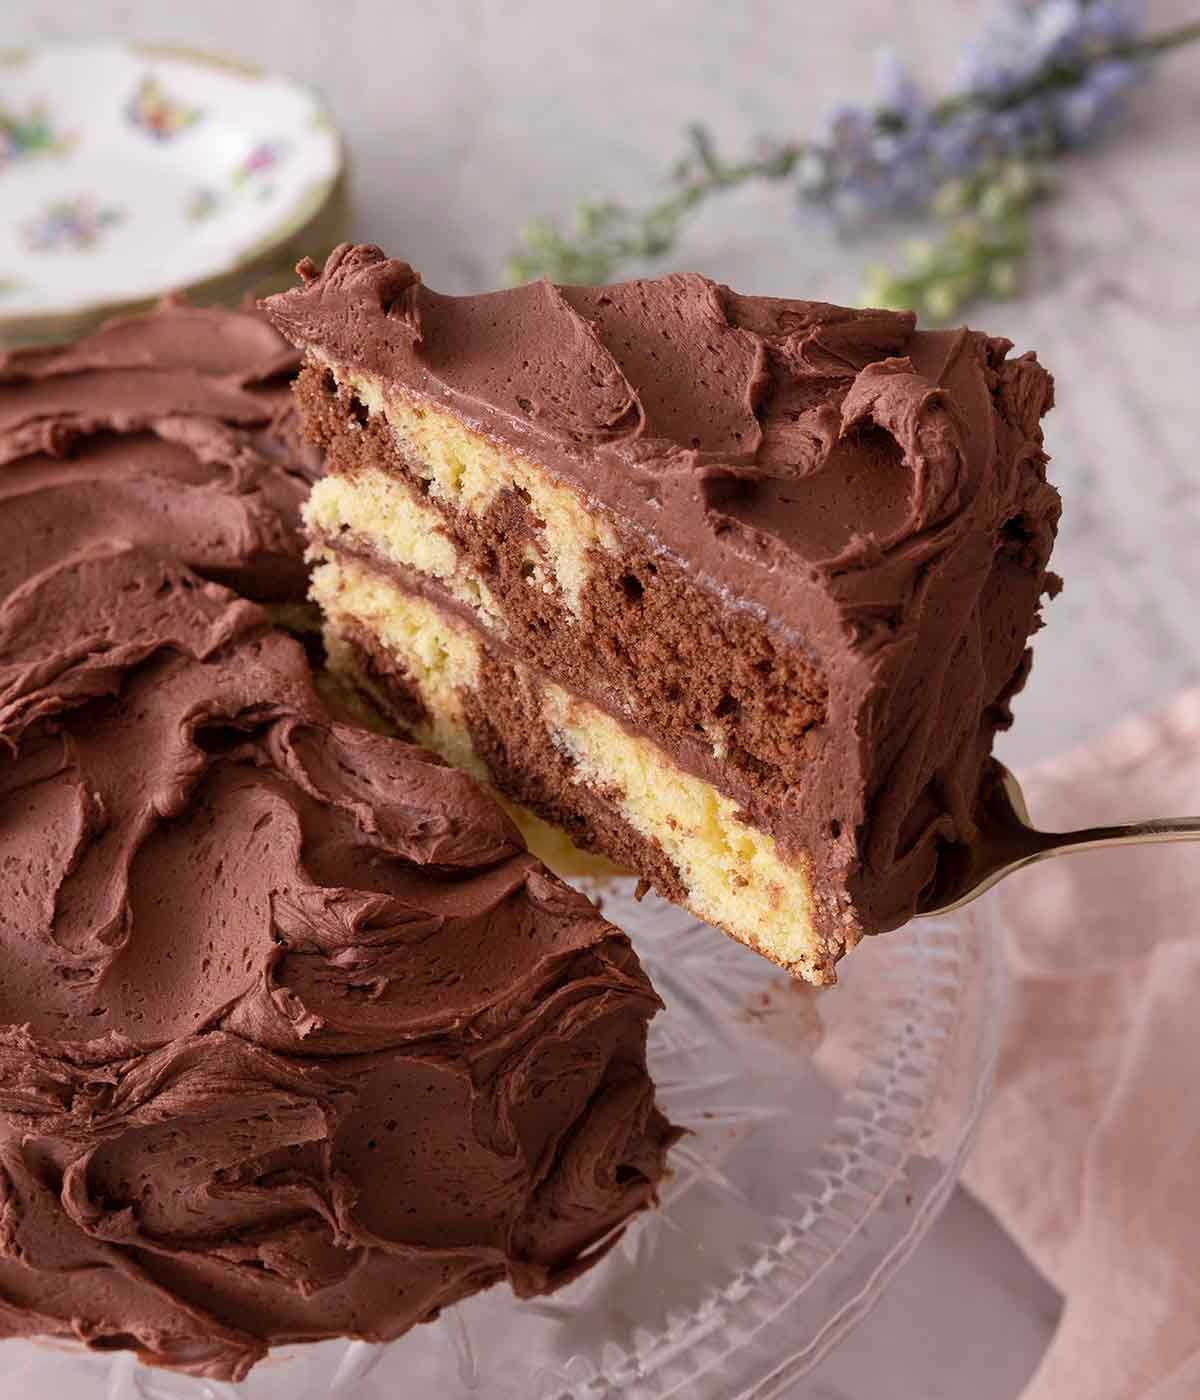 A slice of marble cake being lifted from the cake on a cake stand.